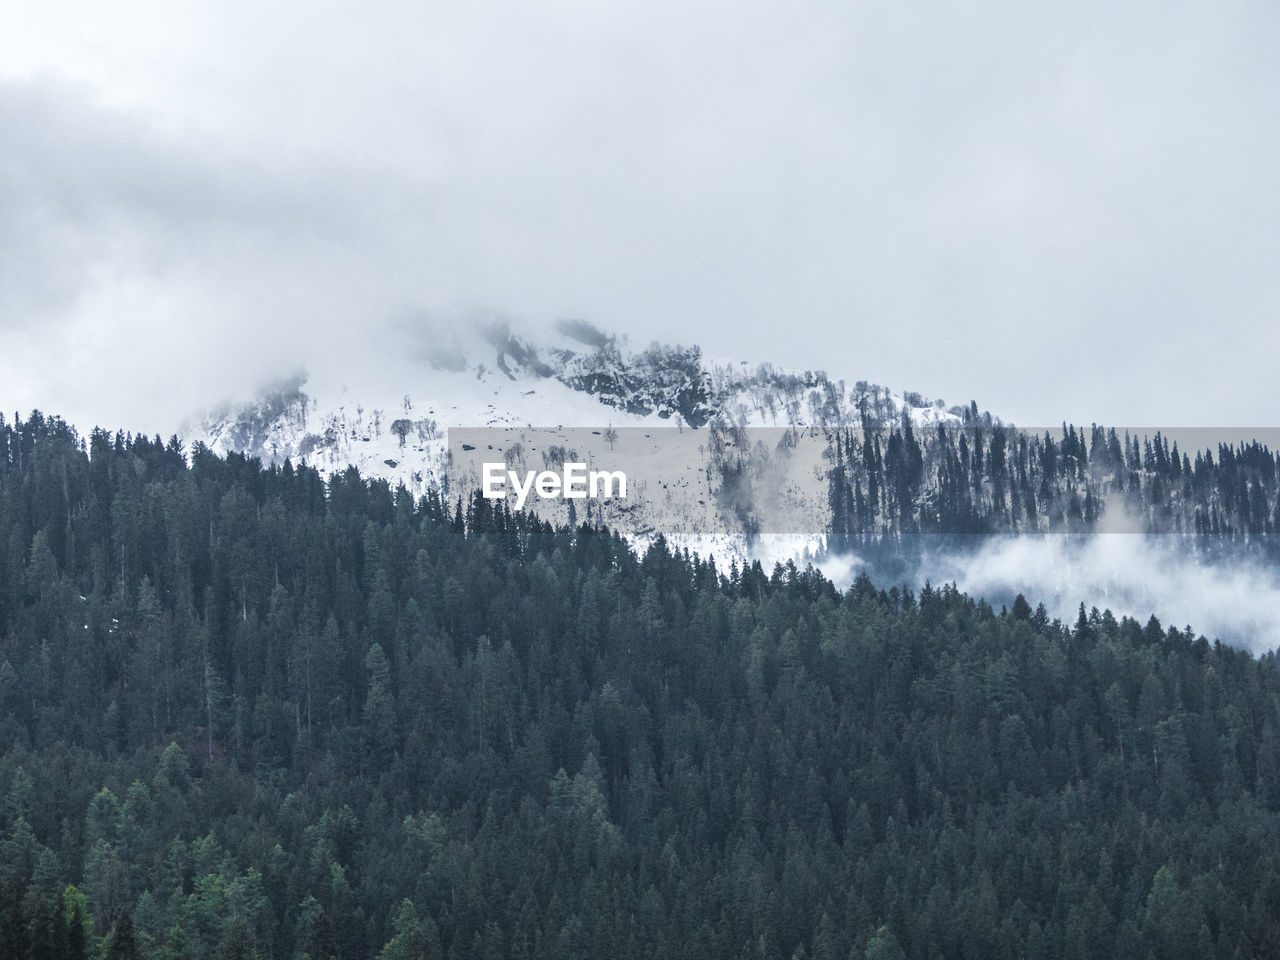 tree, plant, beauty in nature, scenics - nature, mountain, tranquil scene, tranquility, nature, non-urban scene, sky, no people, day, growth, environment, cold temperature, land, winter, forest, fog, outdoors, woodland, pine tree, snowcapped mountain, coniferous tree, high